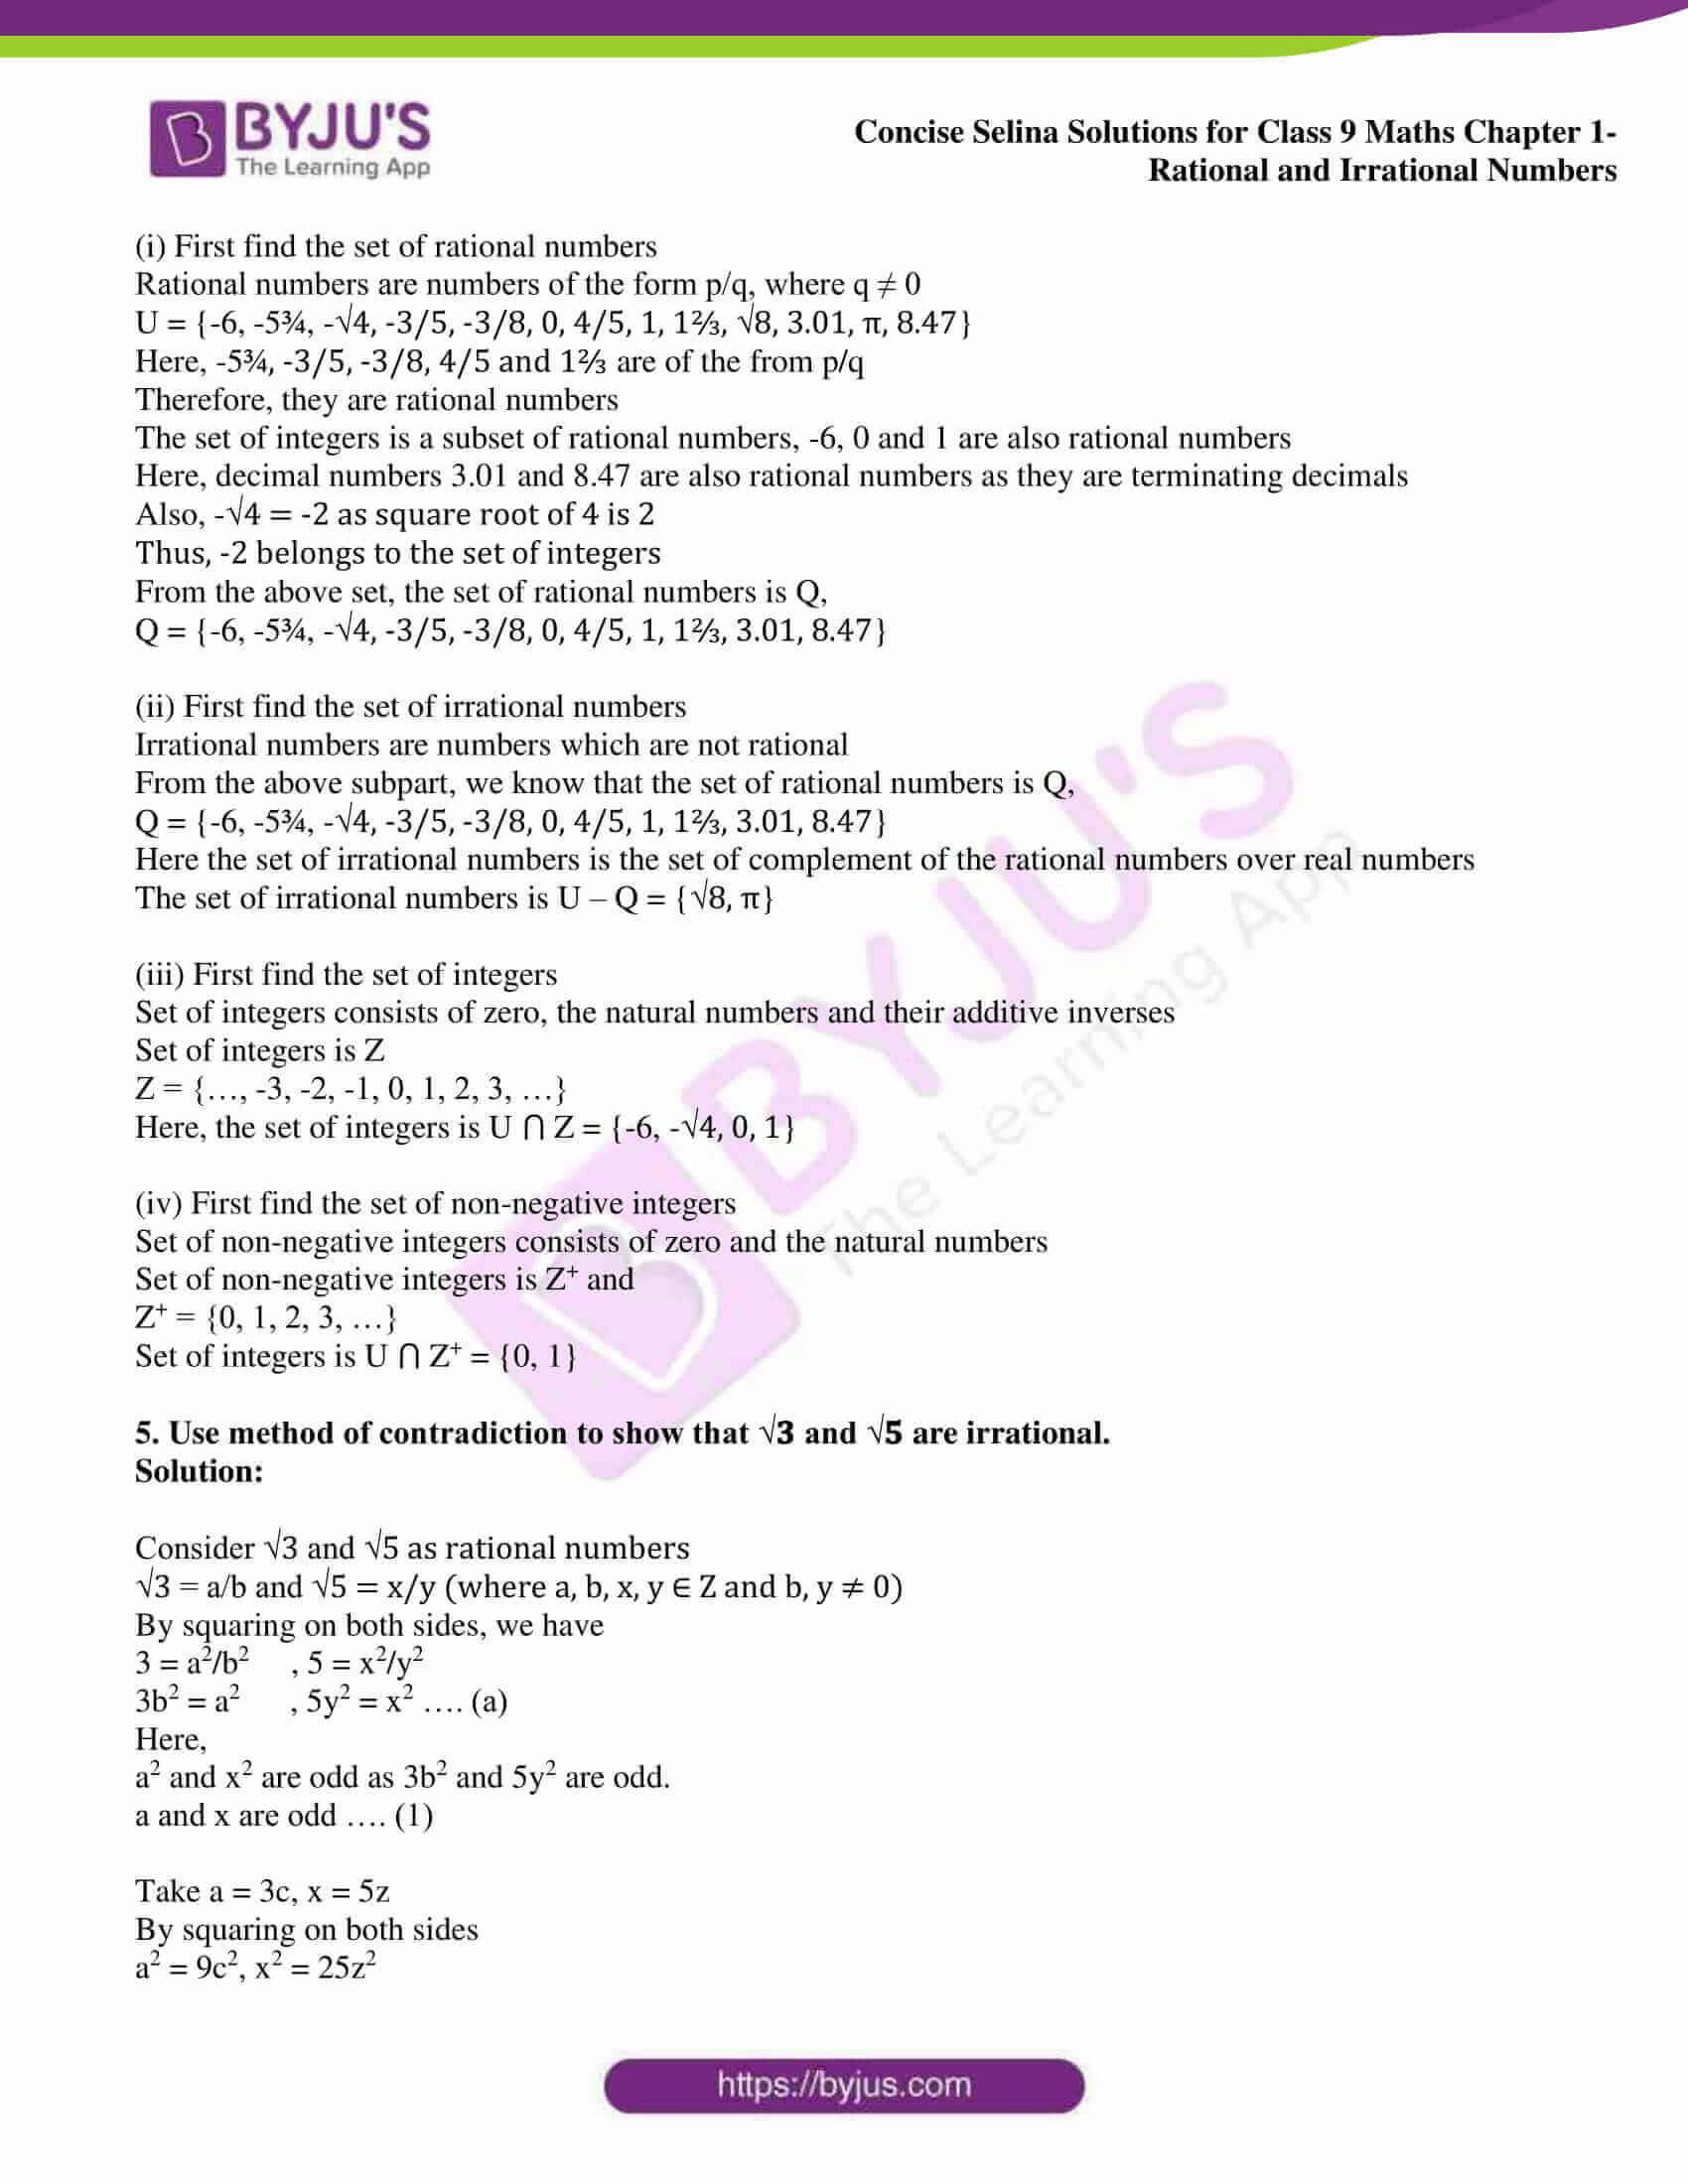 icse class 9 maths may13 selina solutions chapter 1 rational and irrational numbers 07